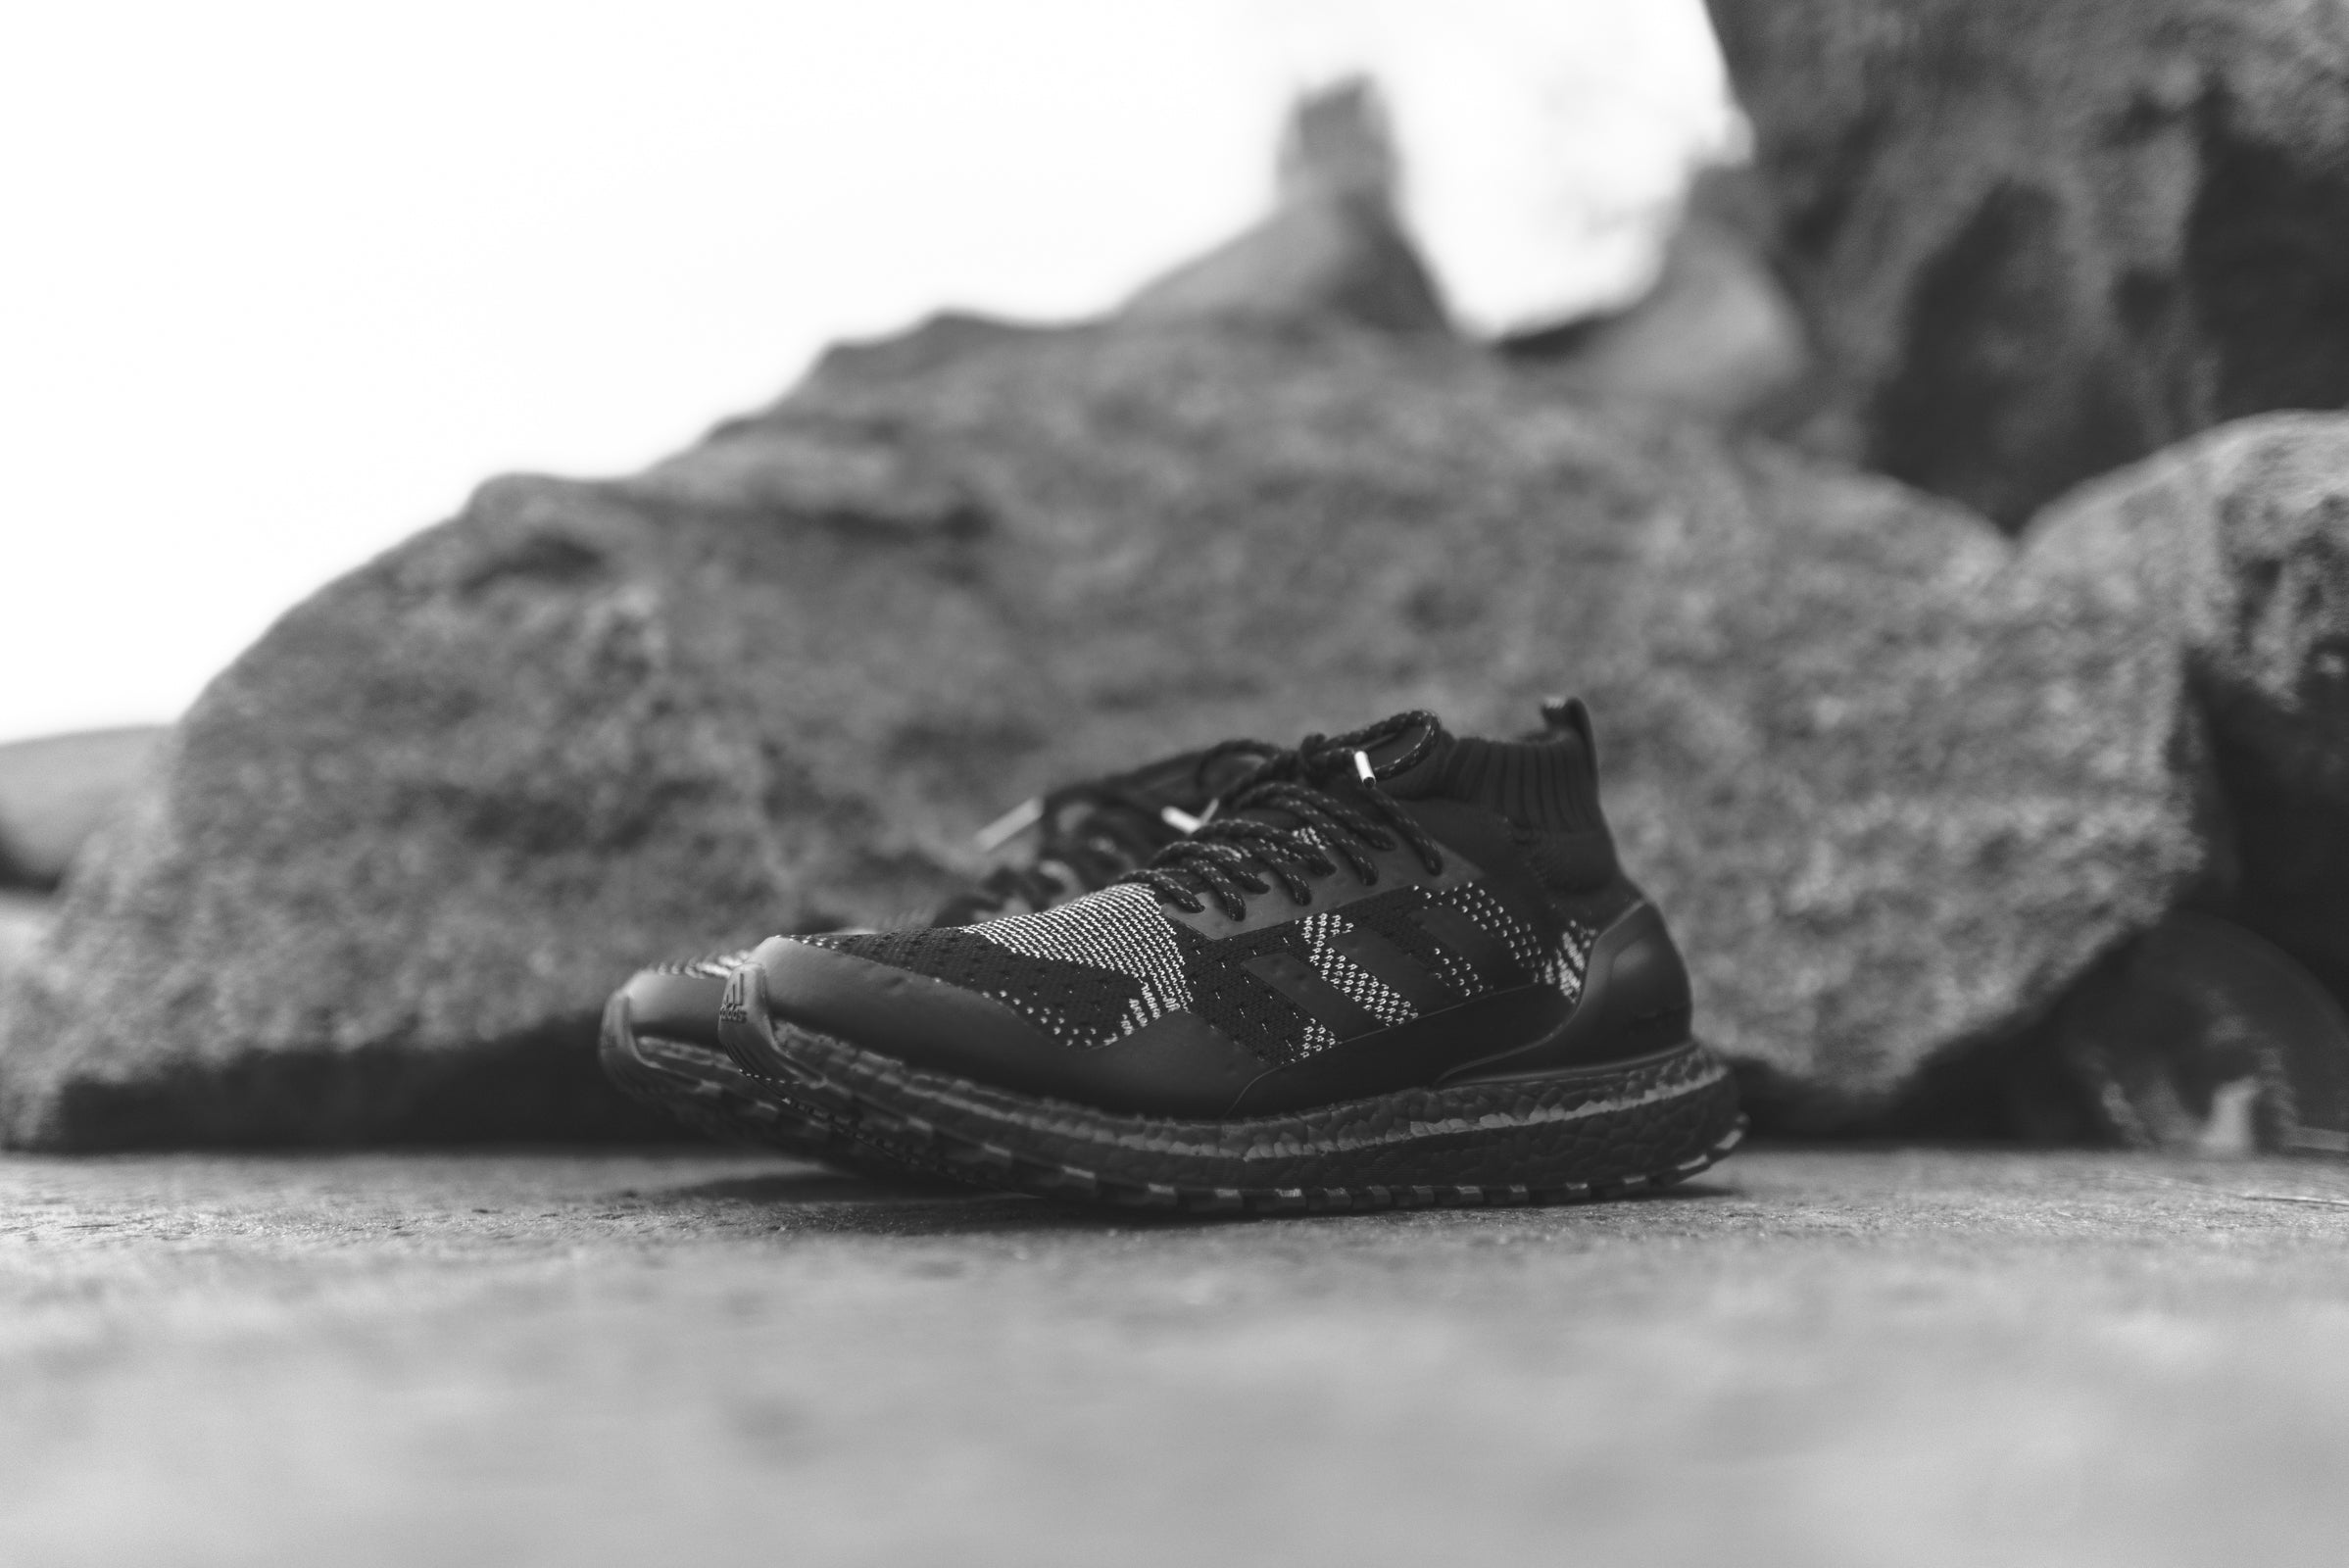 low priced 8e7a9 9d1dc Kith x nonnative x adidas UltraBOOST Mid